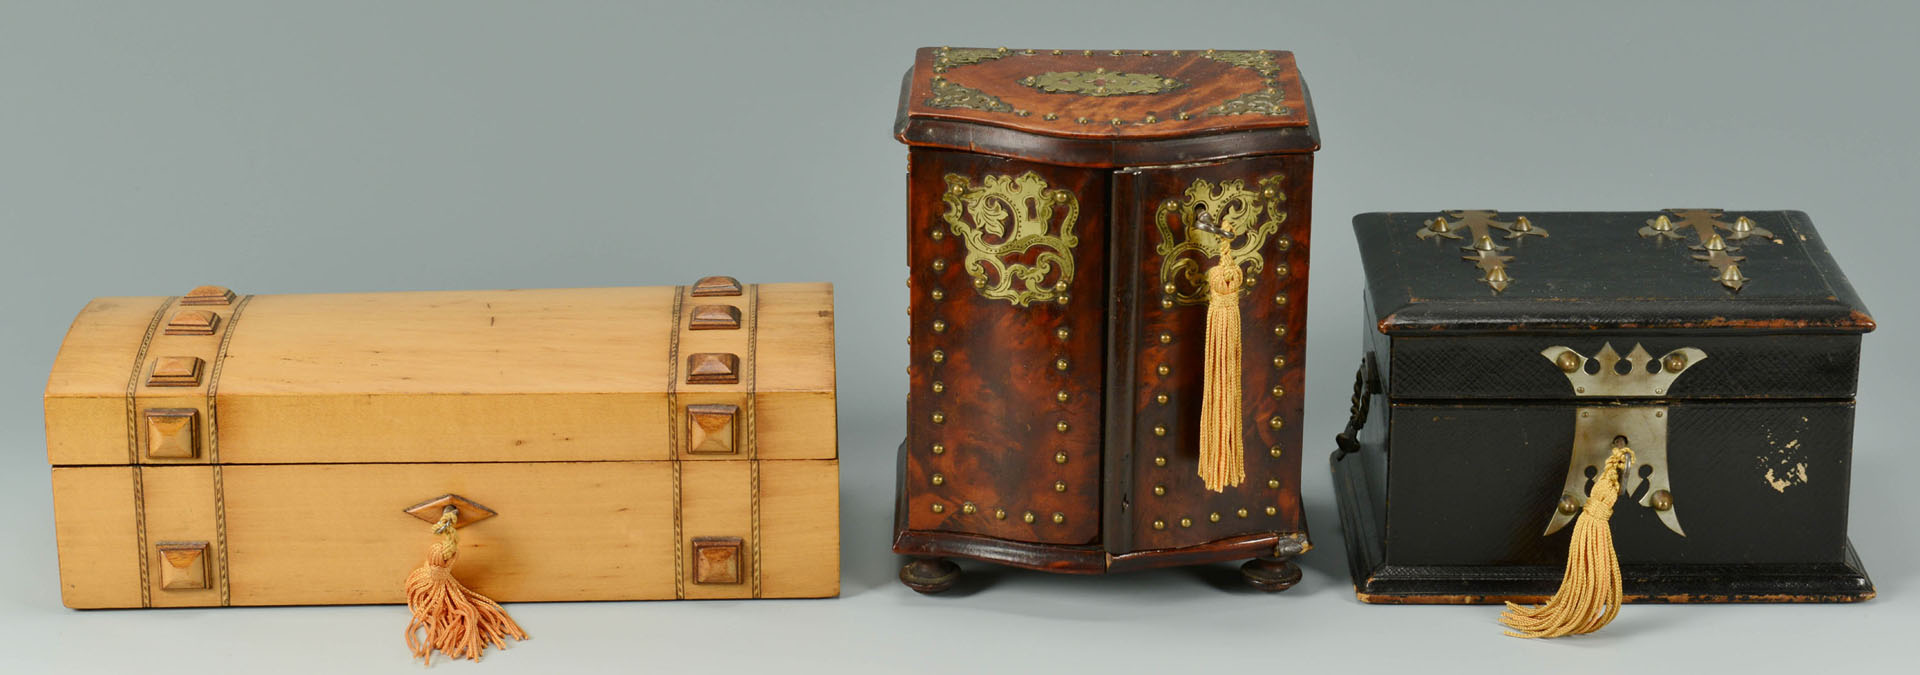 Lot 357: 3 Decorative Boxes and Pair of Asian Shelves